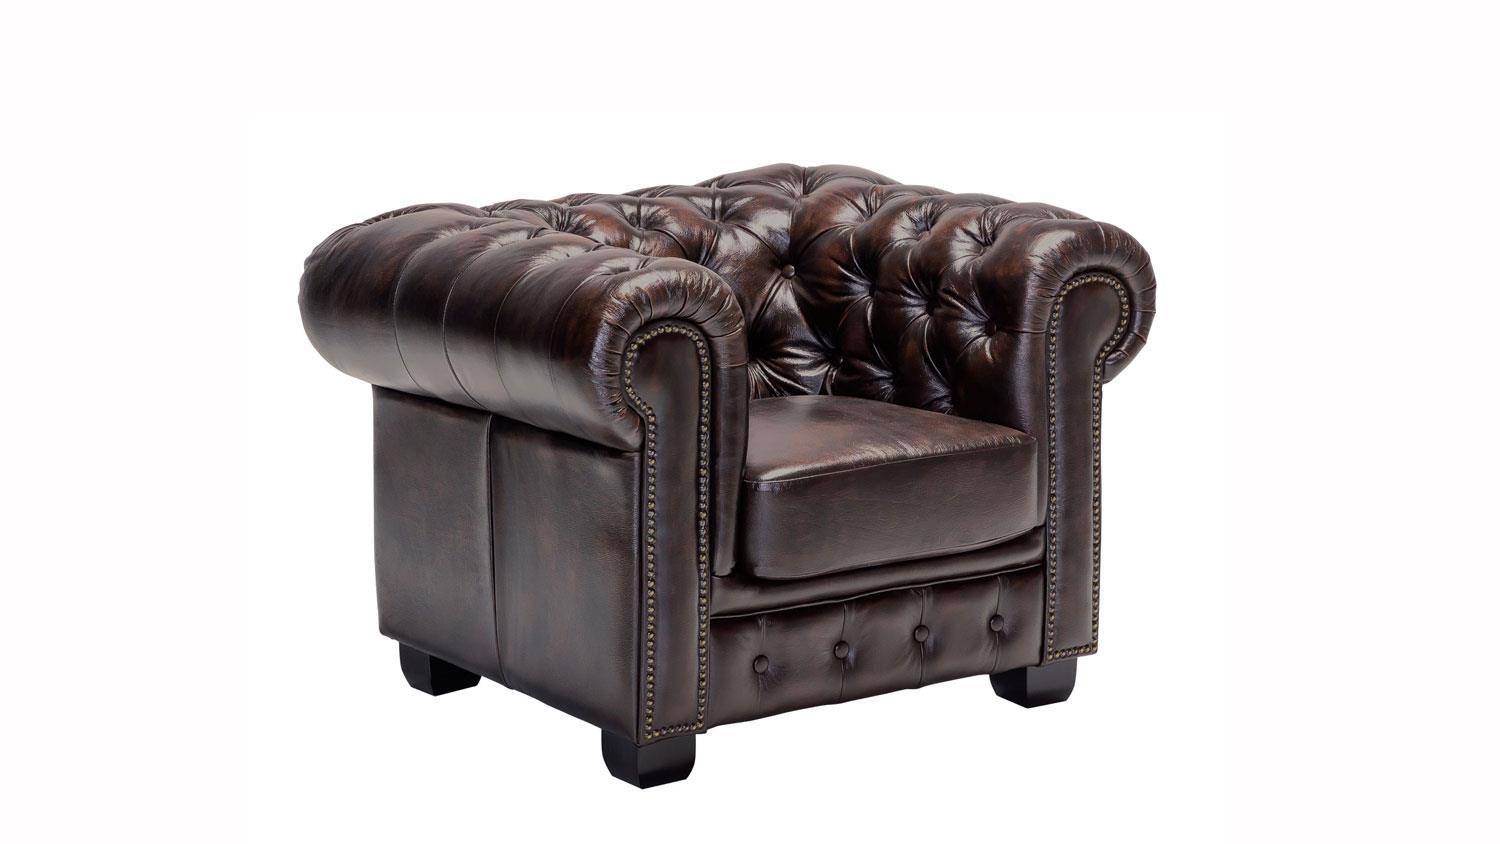 Antik Sessel Leder Chesterfield Sessel Leder Braun Antik Luxus Hochwertig